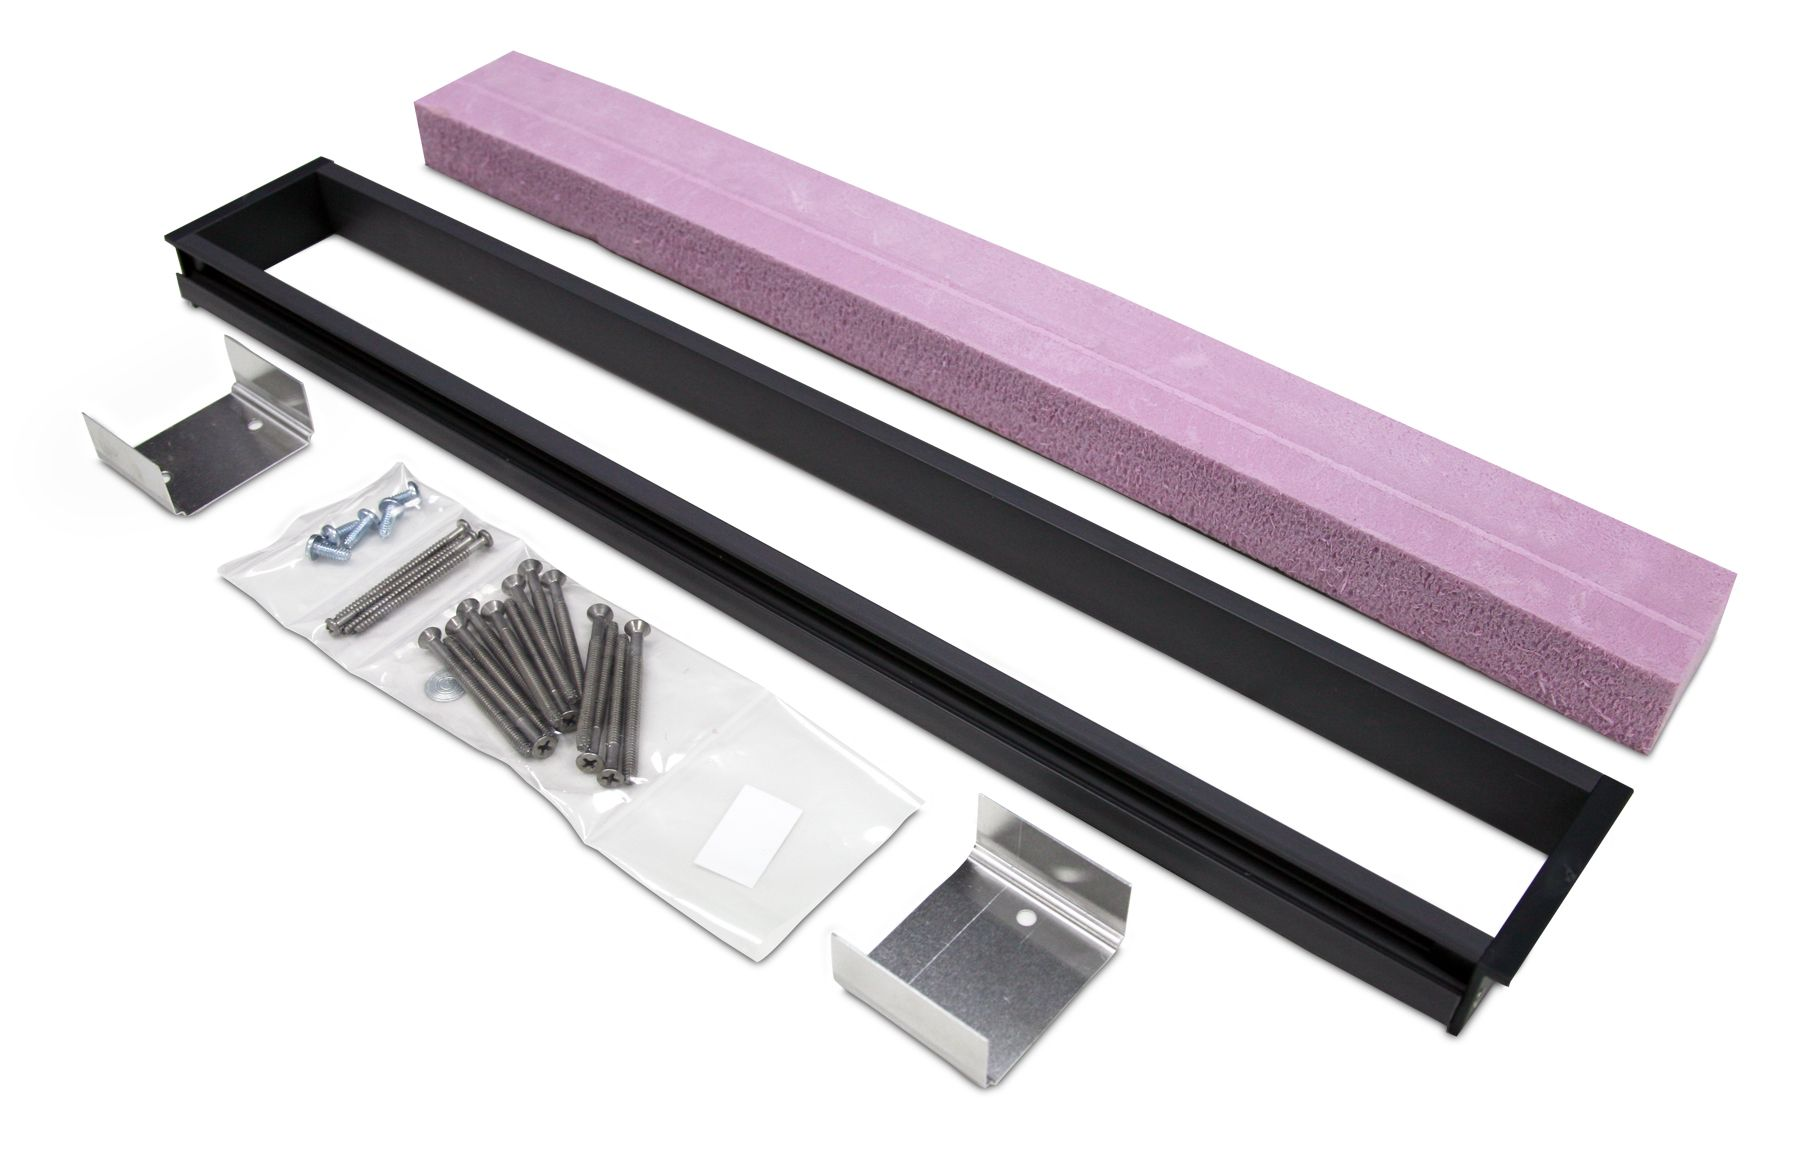 New Mortar Bed Adapter Kits For The Freestyle Linear Drains For